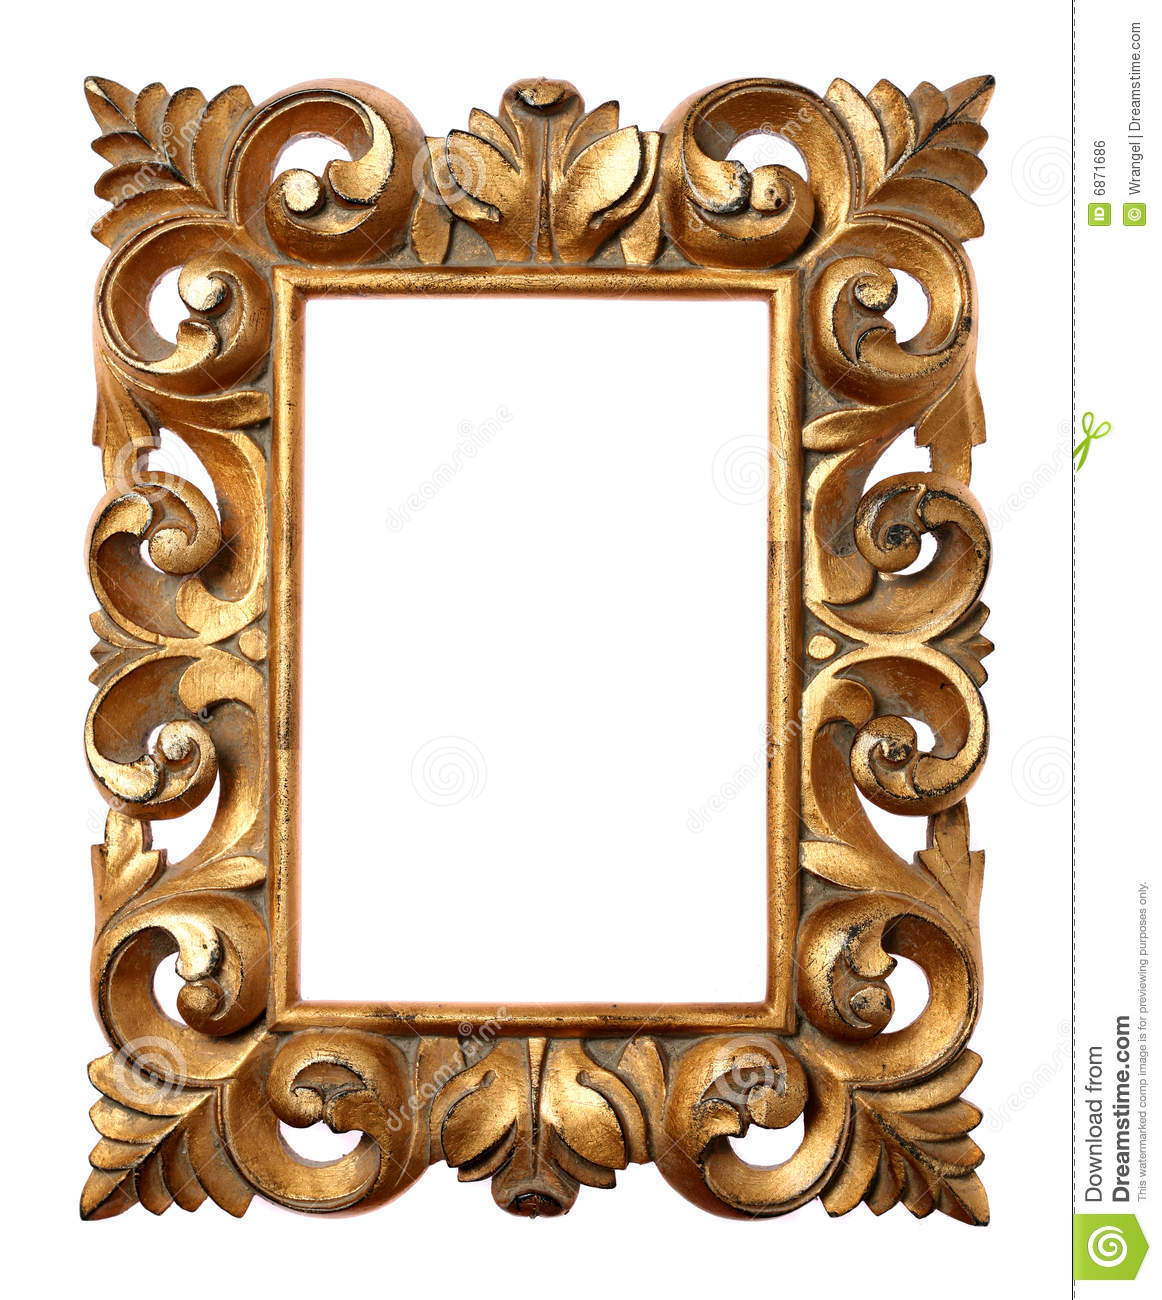 Frame barroco de madeira imagem de stock royalty free for Espejos finos decorativos